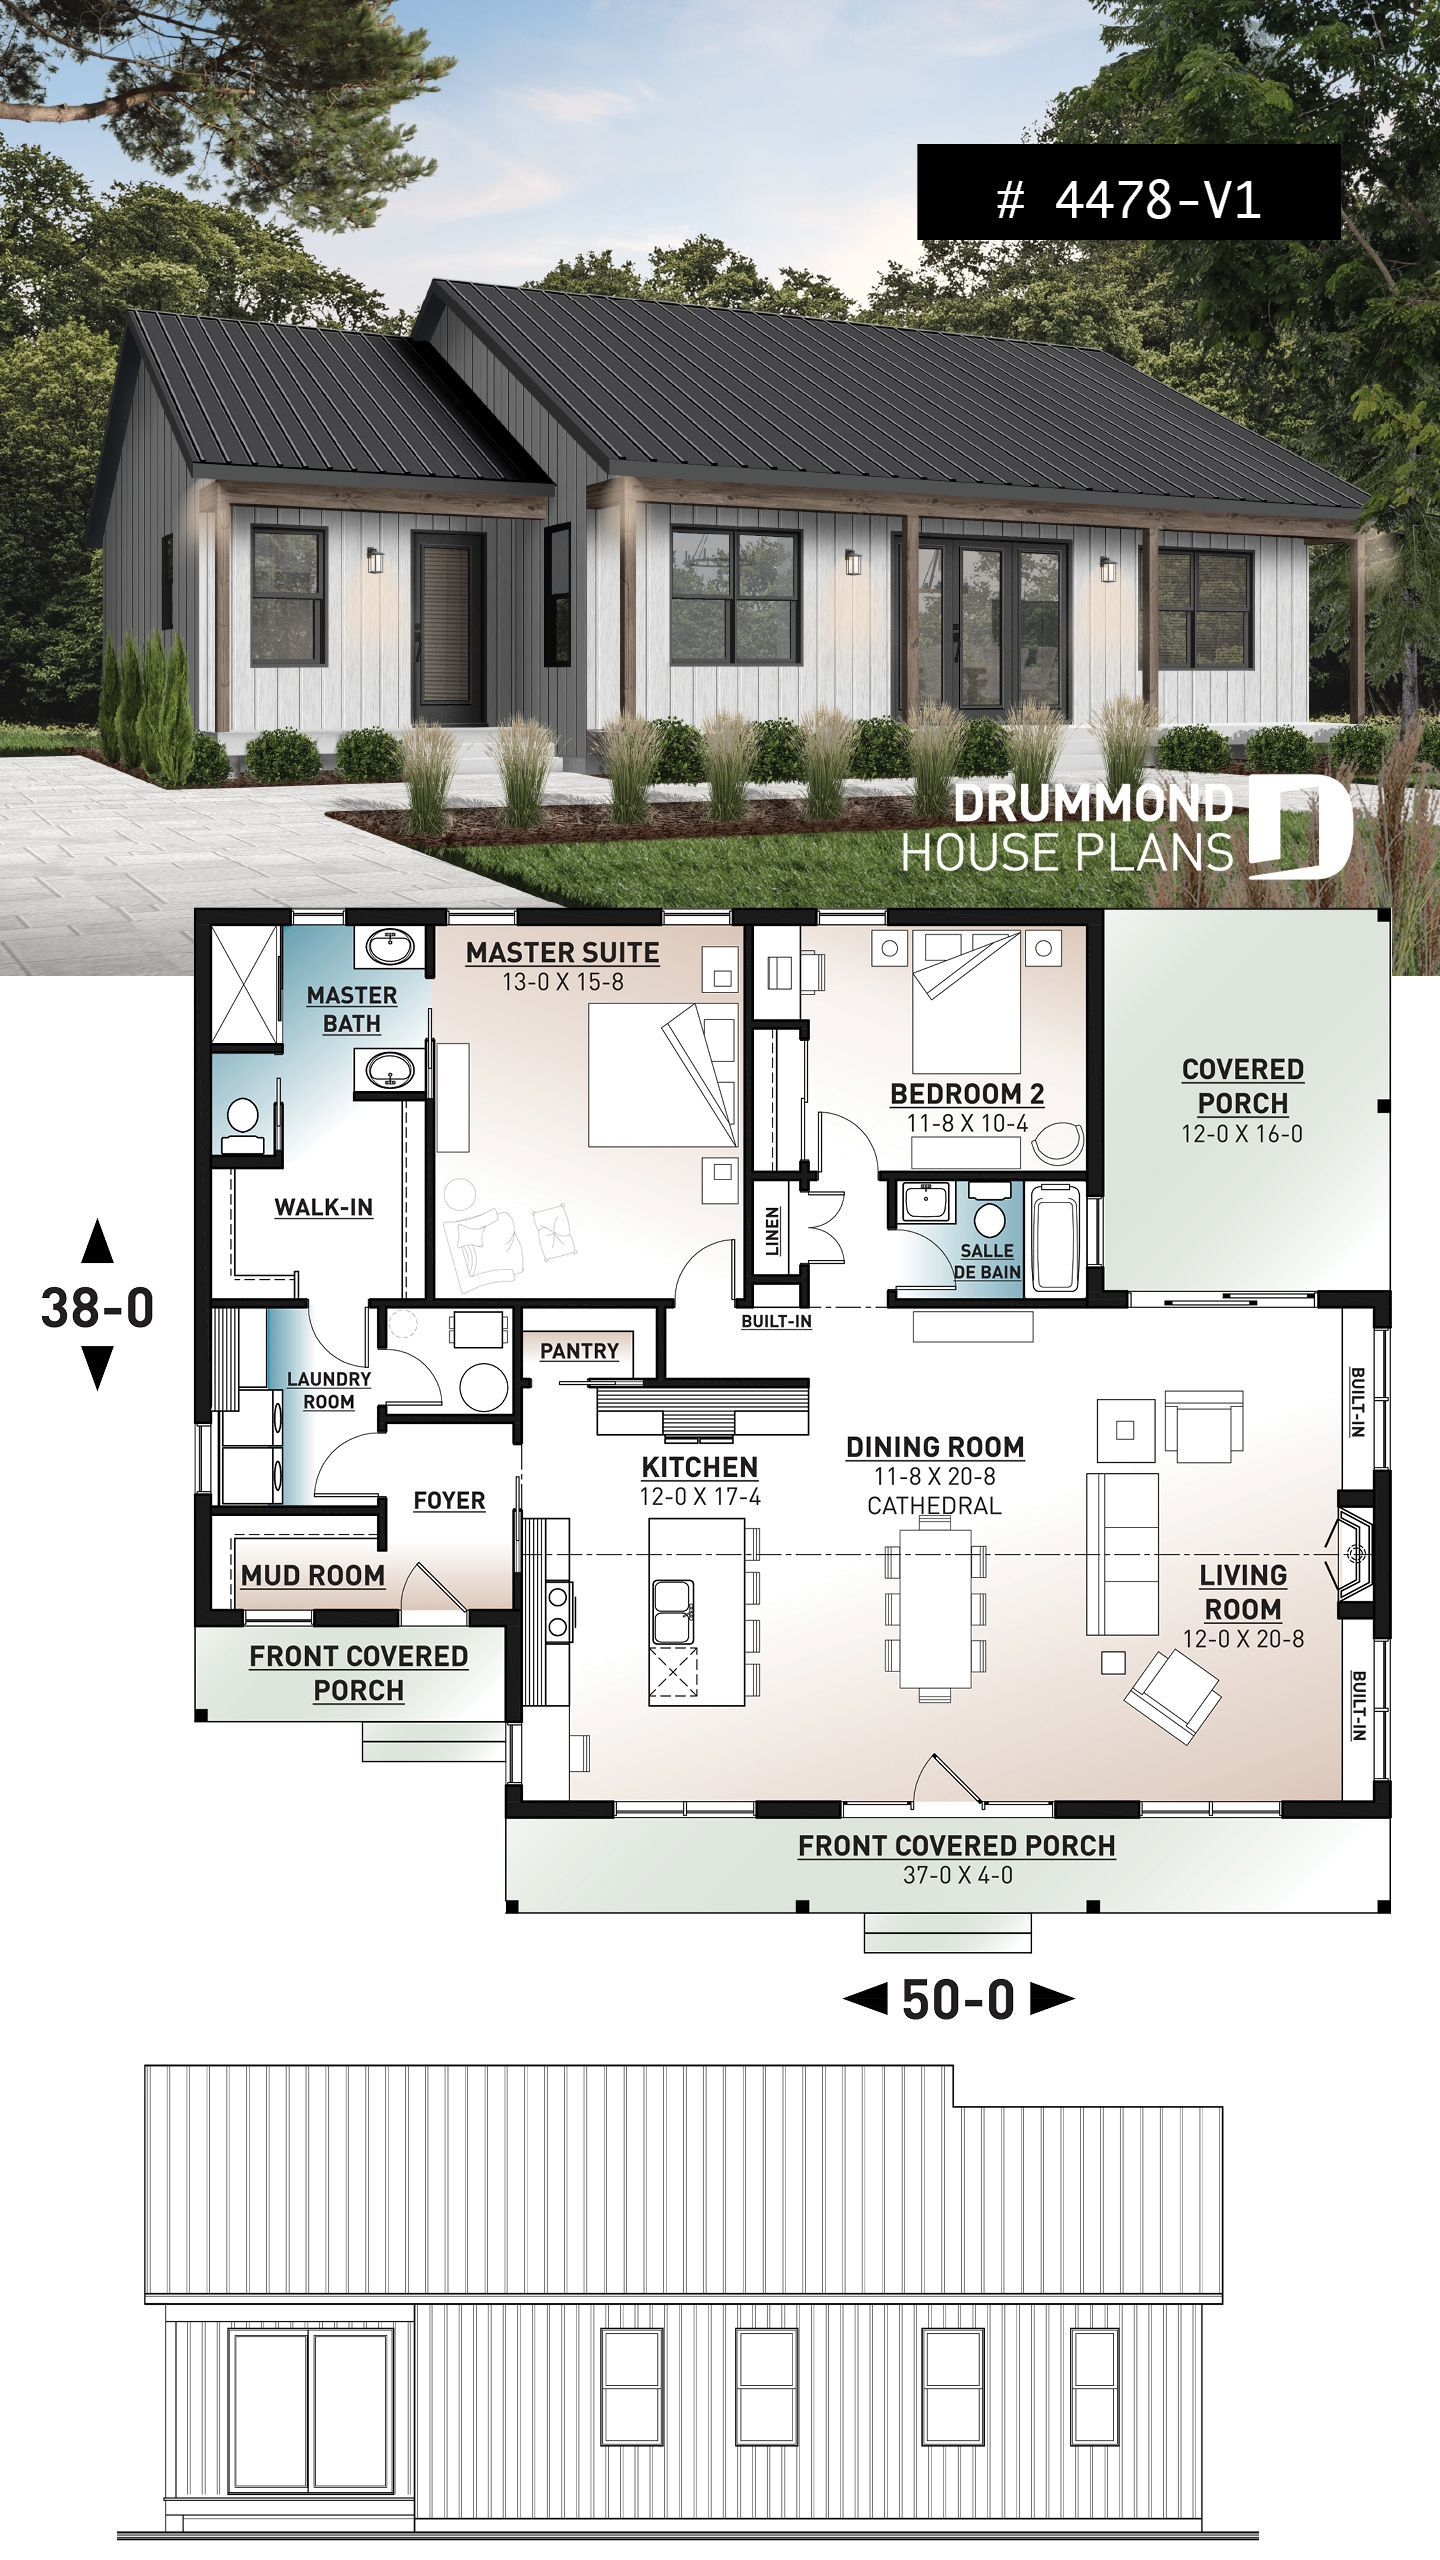 25 Best Tiny House Planssmall Farmhouse Plan 2 Bedroom 2 Bedrooms 2 Bathrooms Economical Mod In 2020 Small Farmhouse Plans Ranch Style House Plans Farmhouse Plans